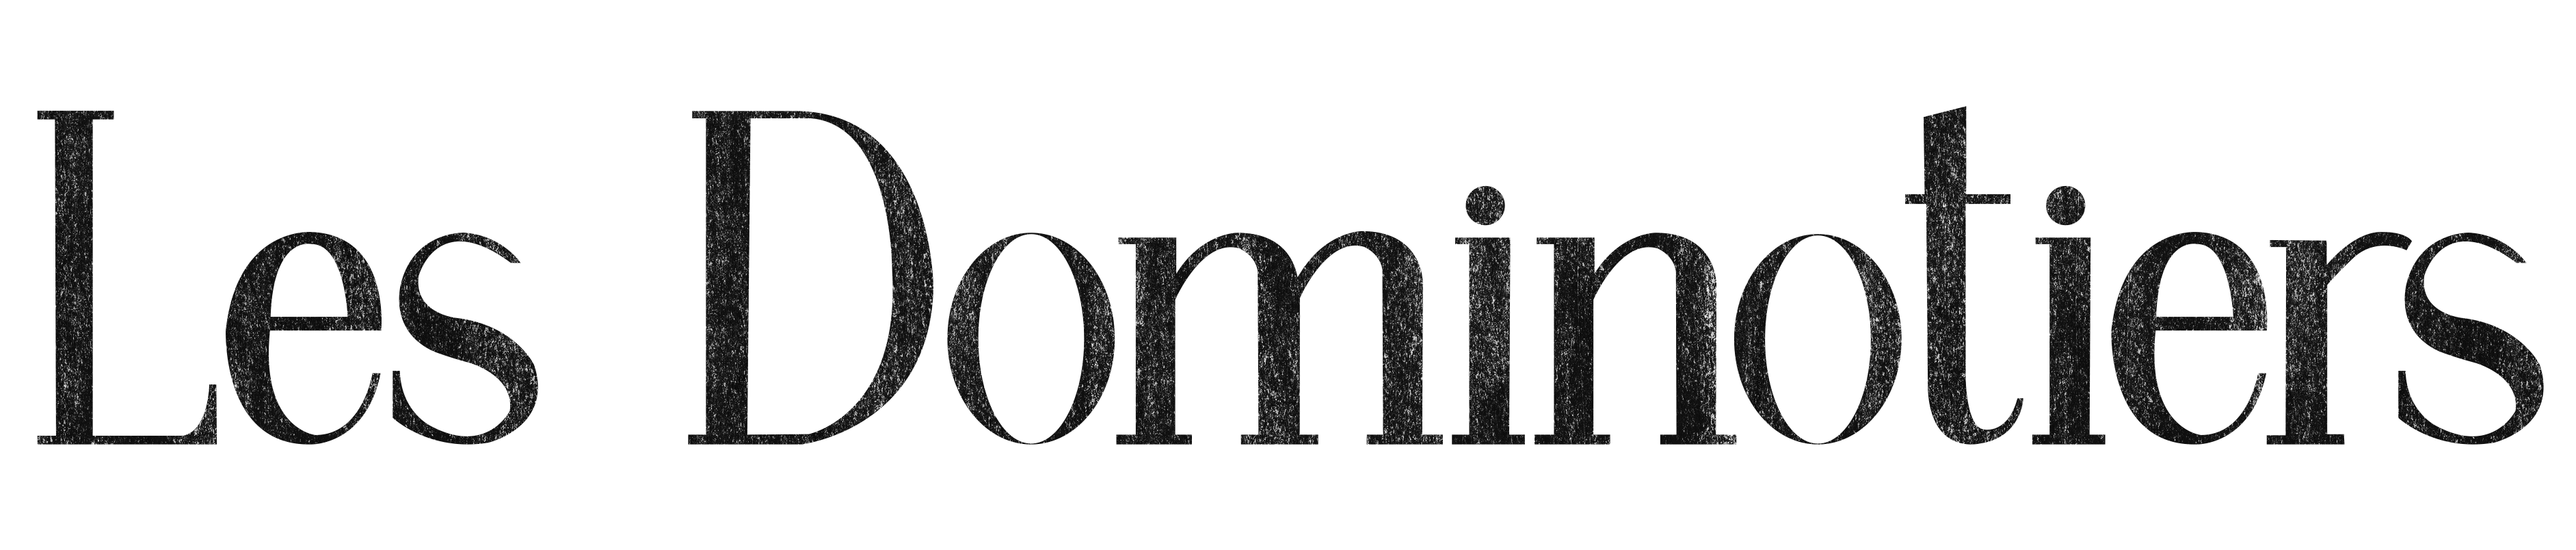 Les Dominotiers - Logo